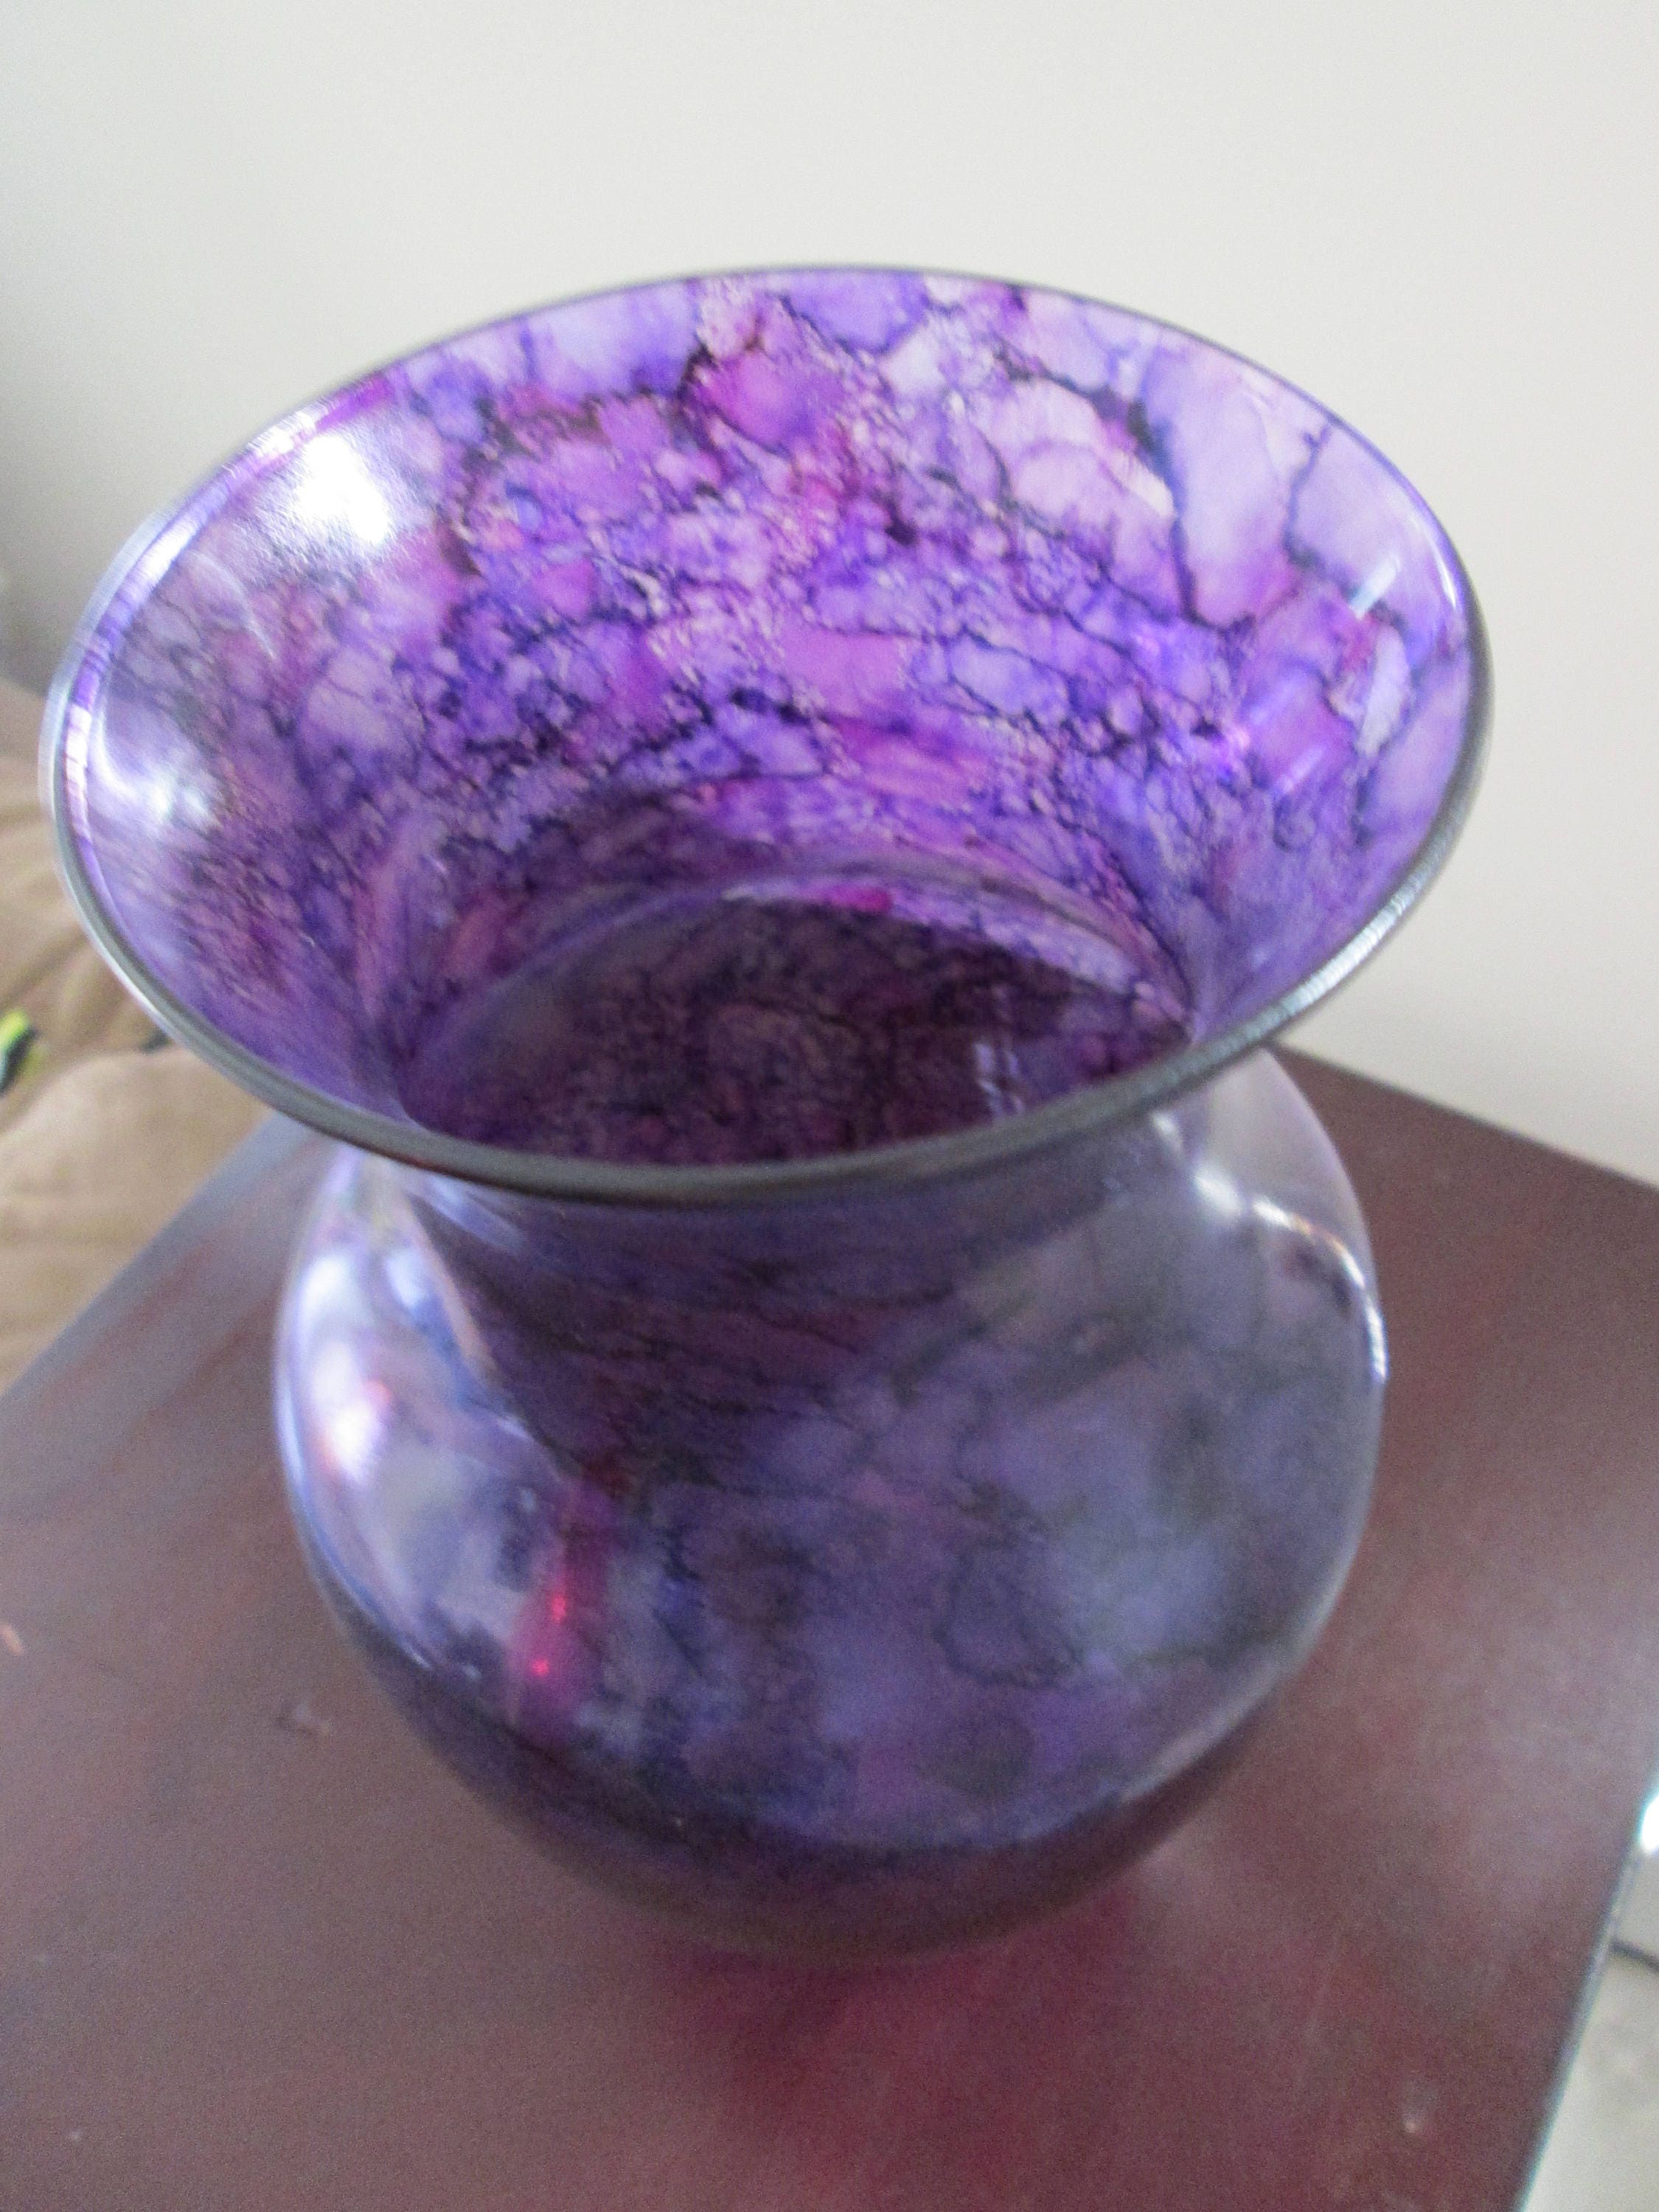 Stained glass vase images vases design picture vase gift purple tall glass vase purple glass vase flower vase vase gift purple tall glass reviewsmspy